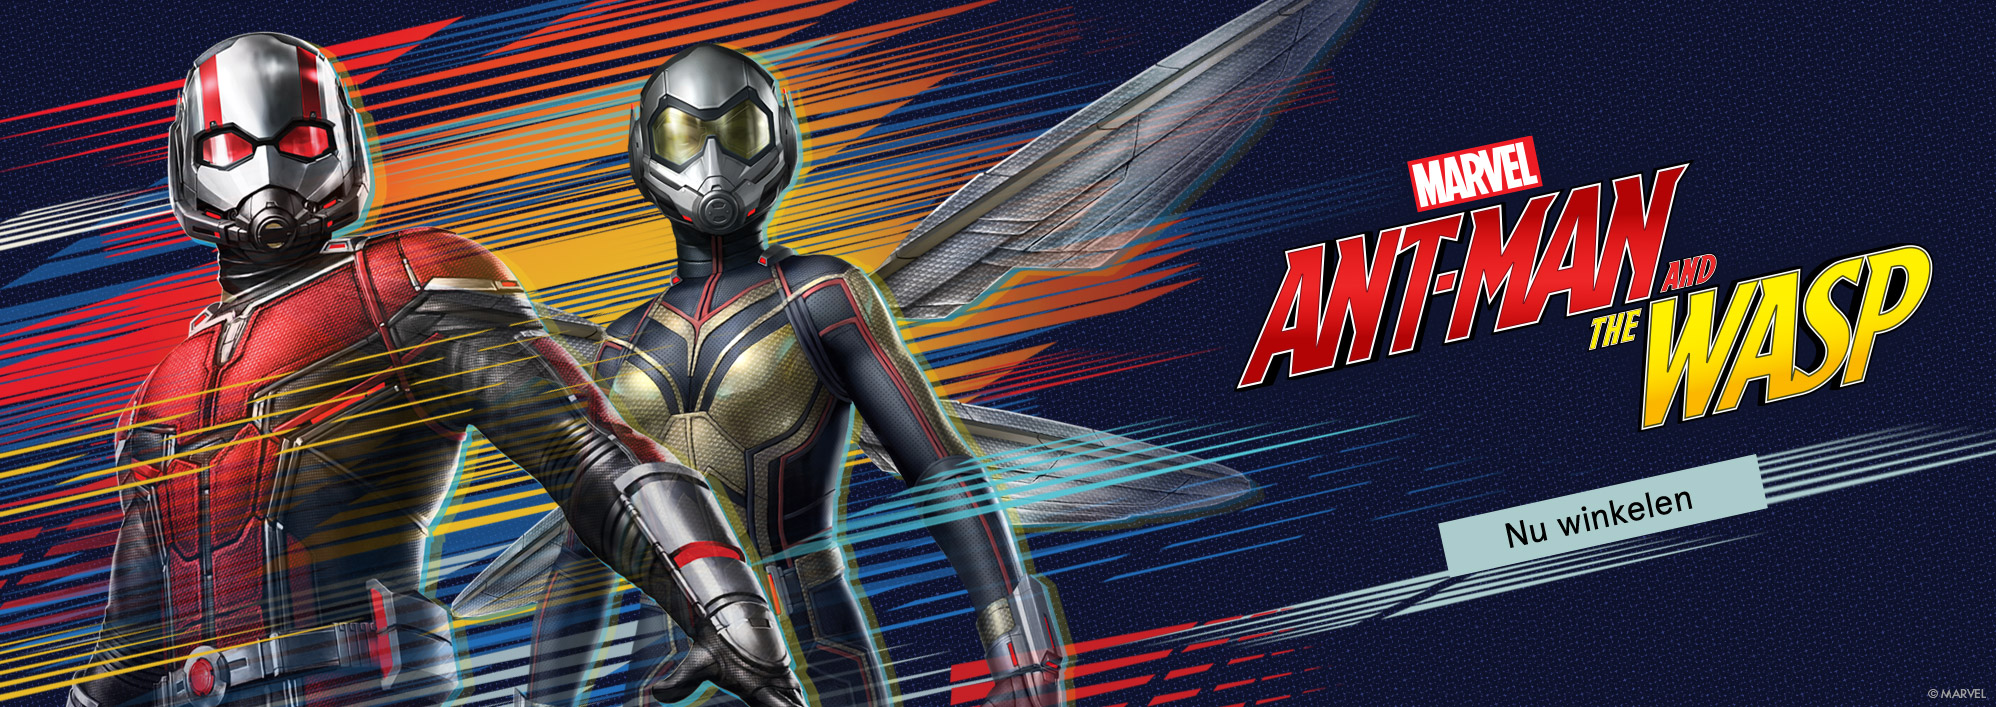 Marvel. Ant-Man and the Wasp. Nu winkelen.